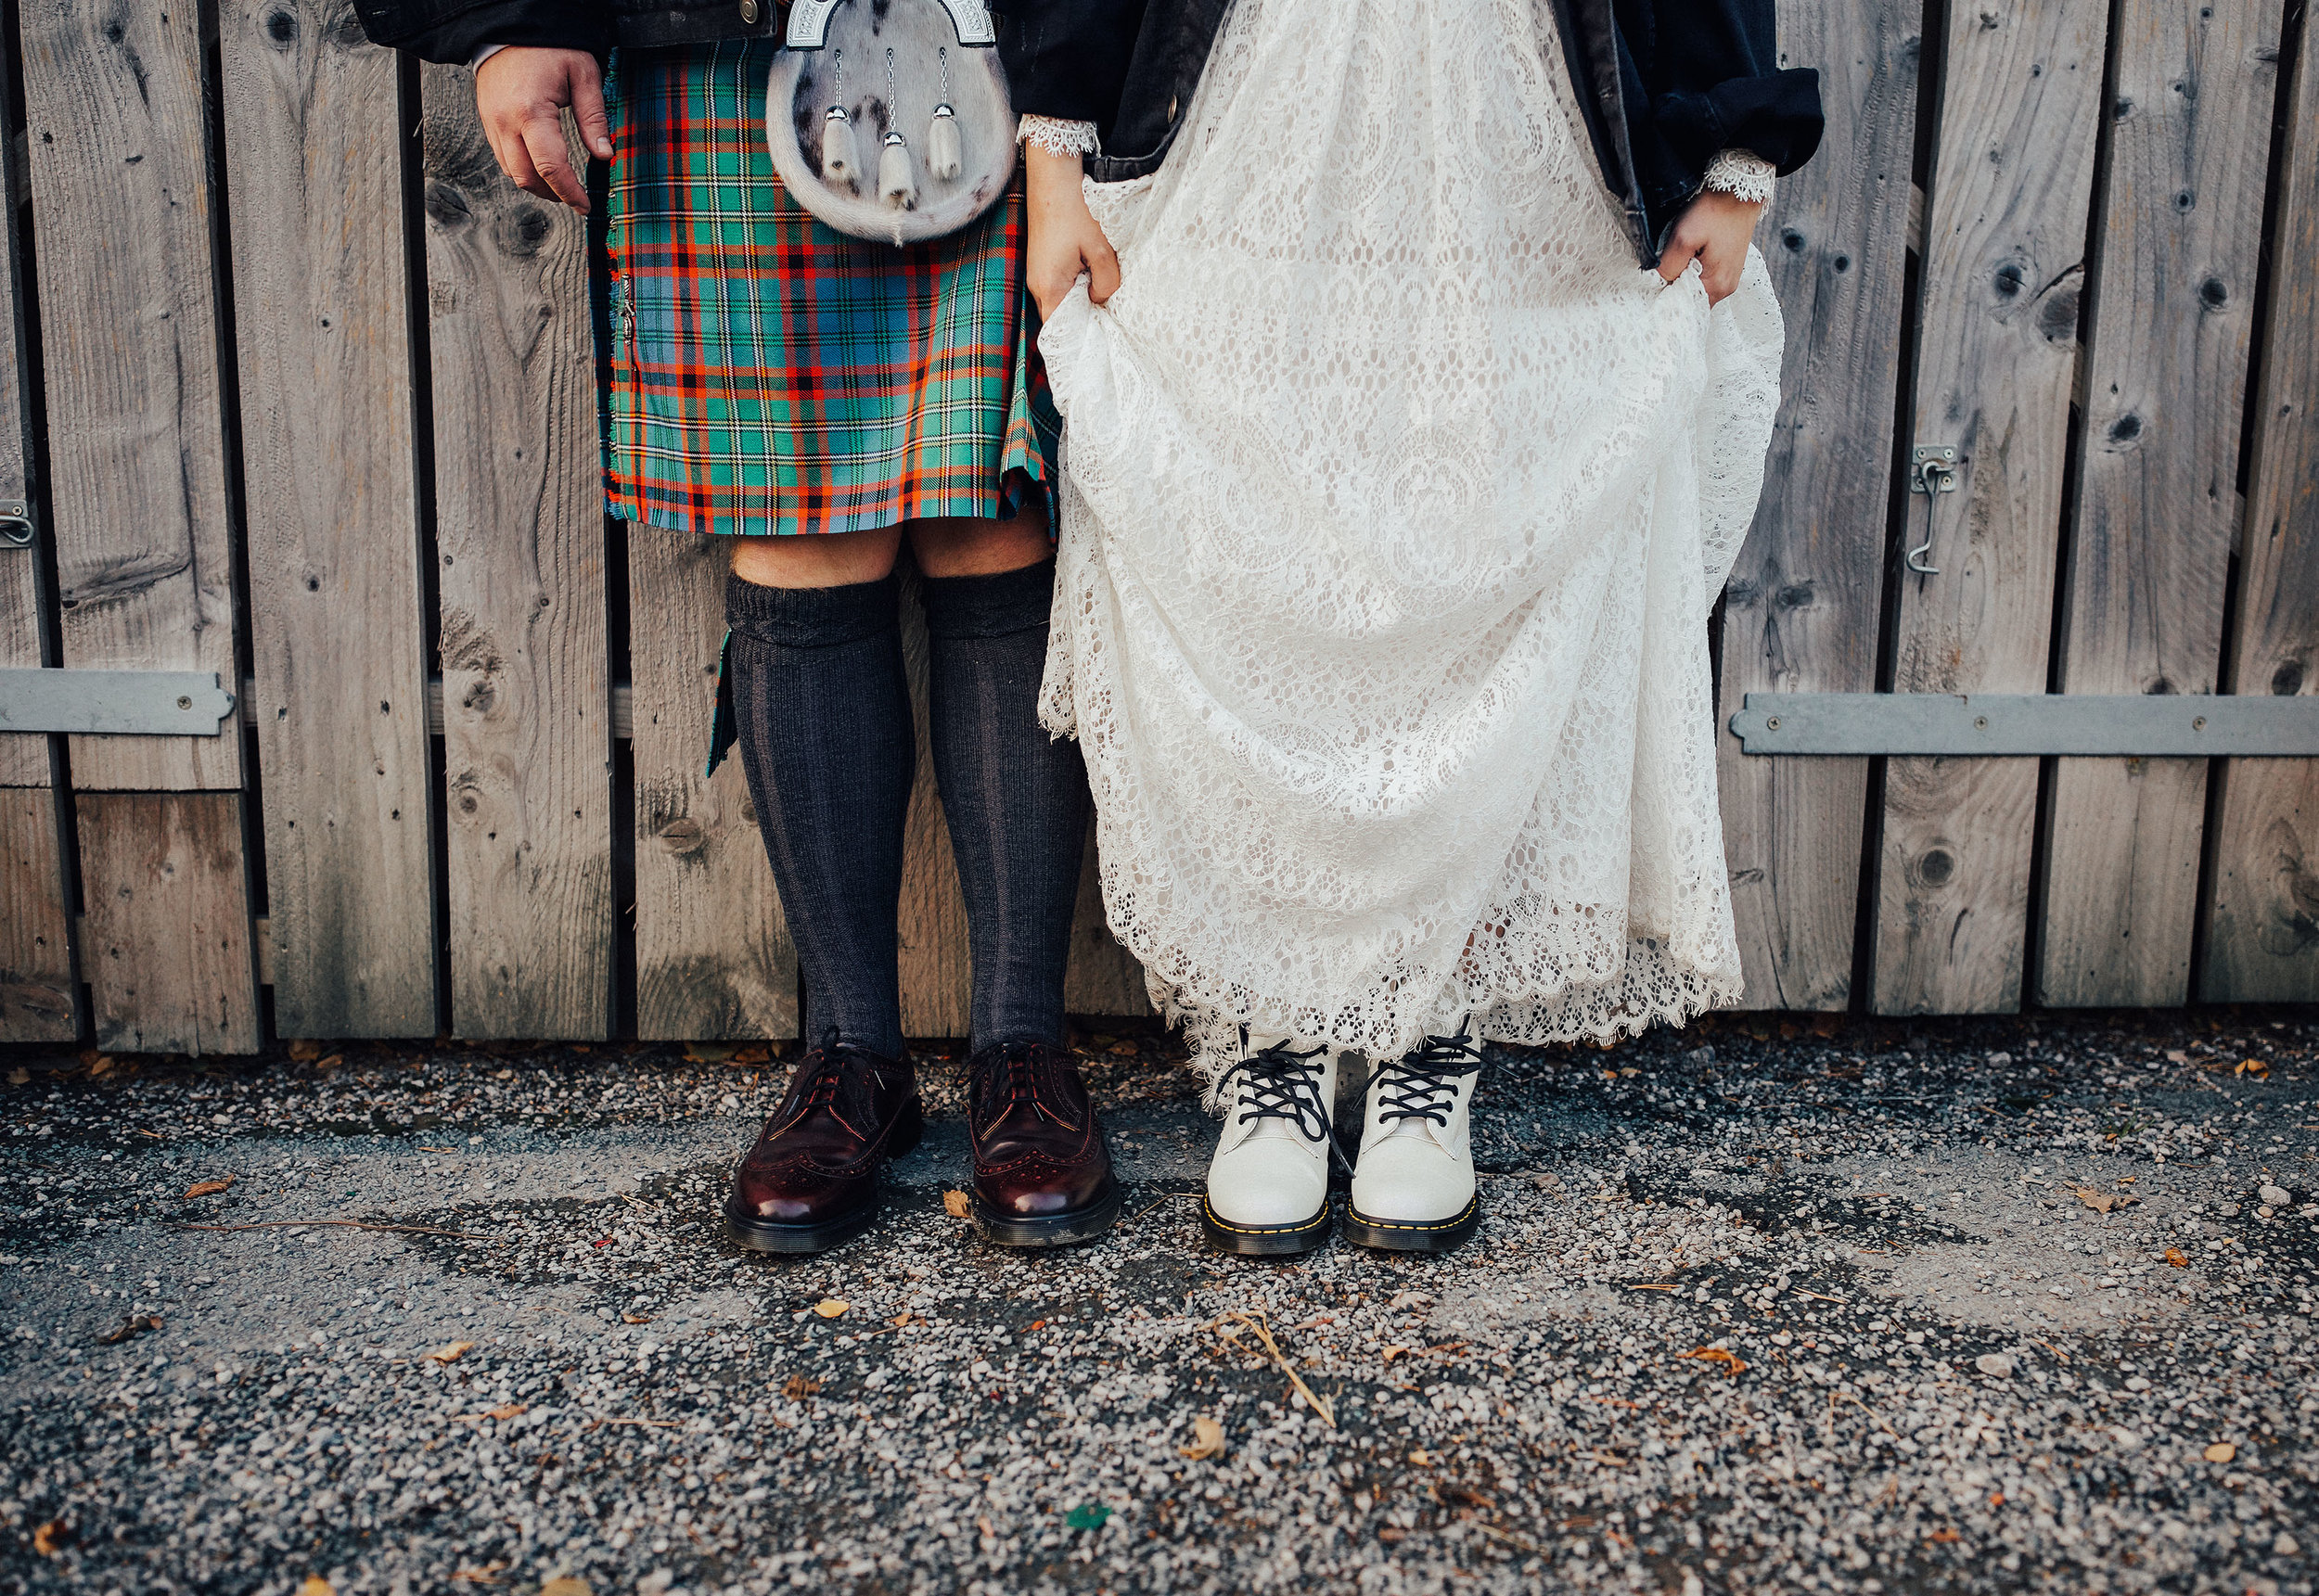 PJ_PHILLIPS_PHOTOGRAPHY_2018_SCOTLAND_WEDDING_PHOTOOGRAPHER_195.jpg